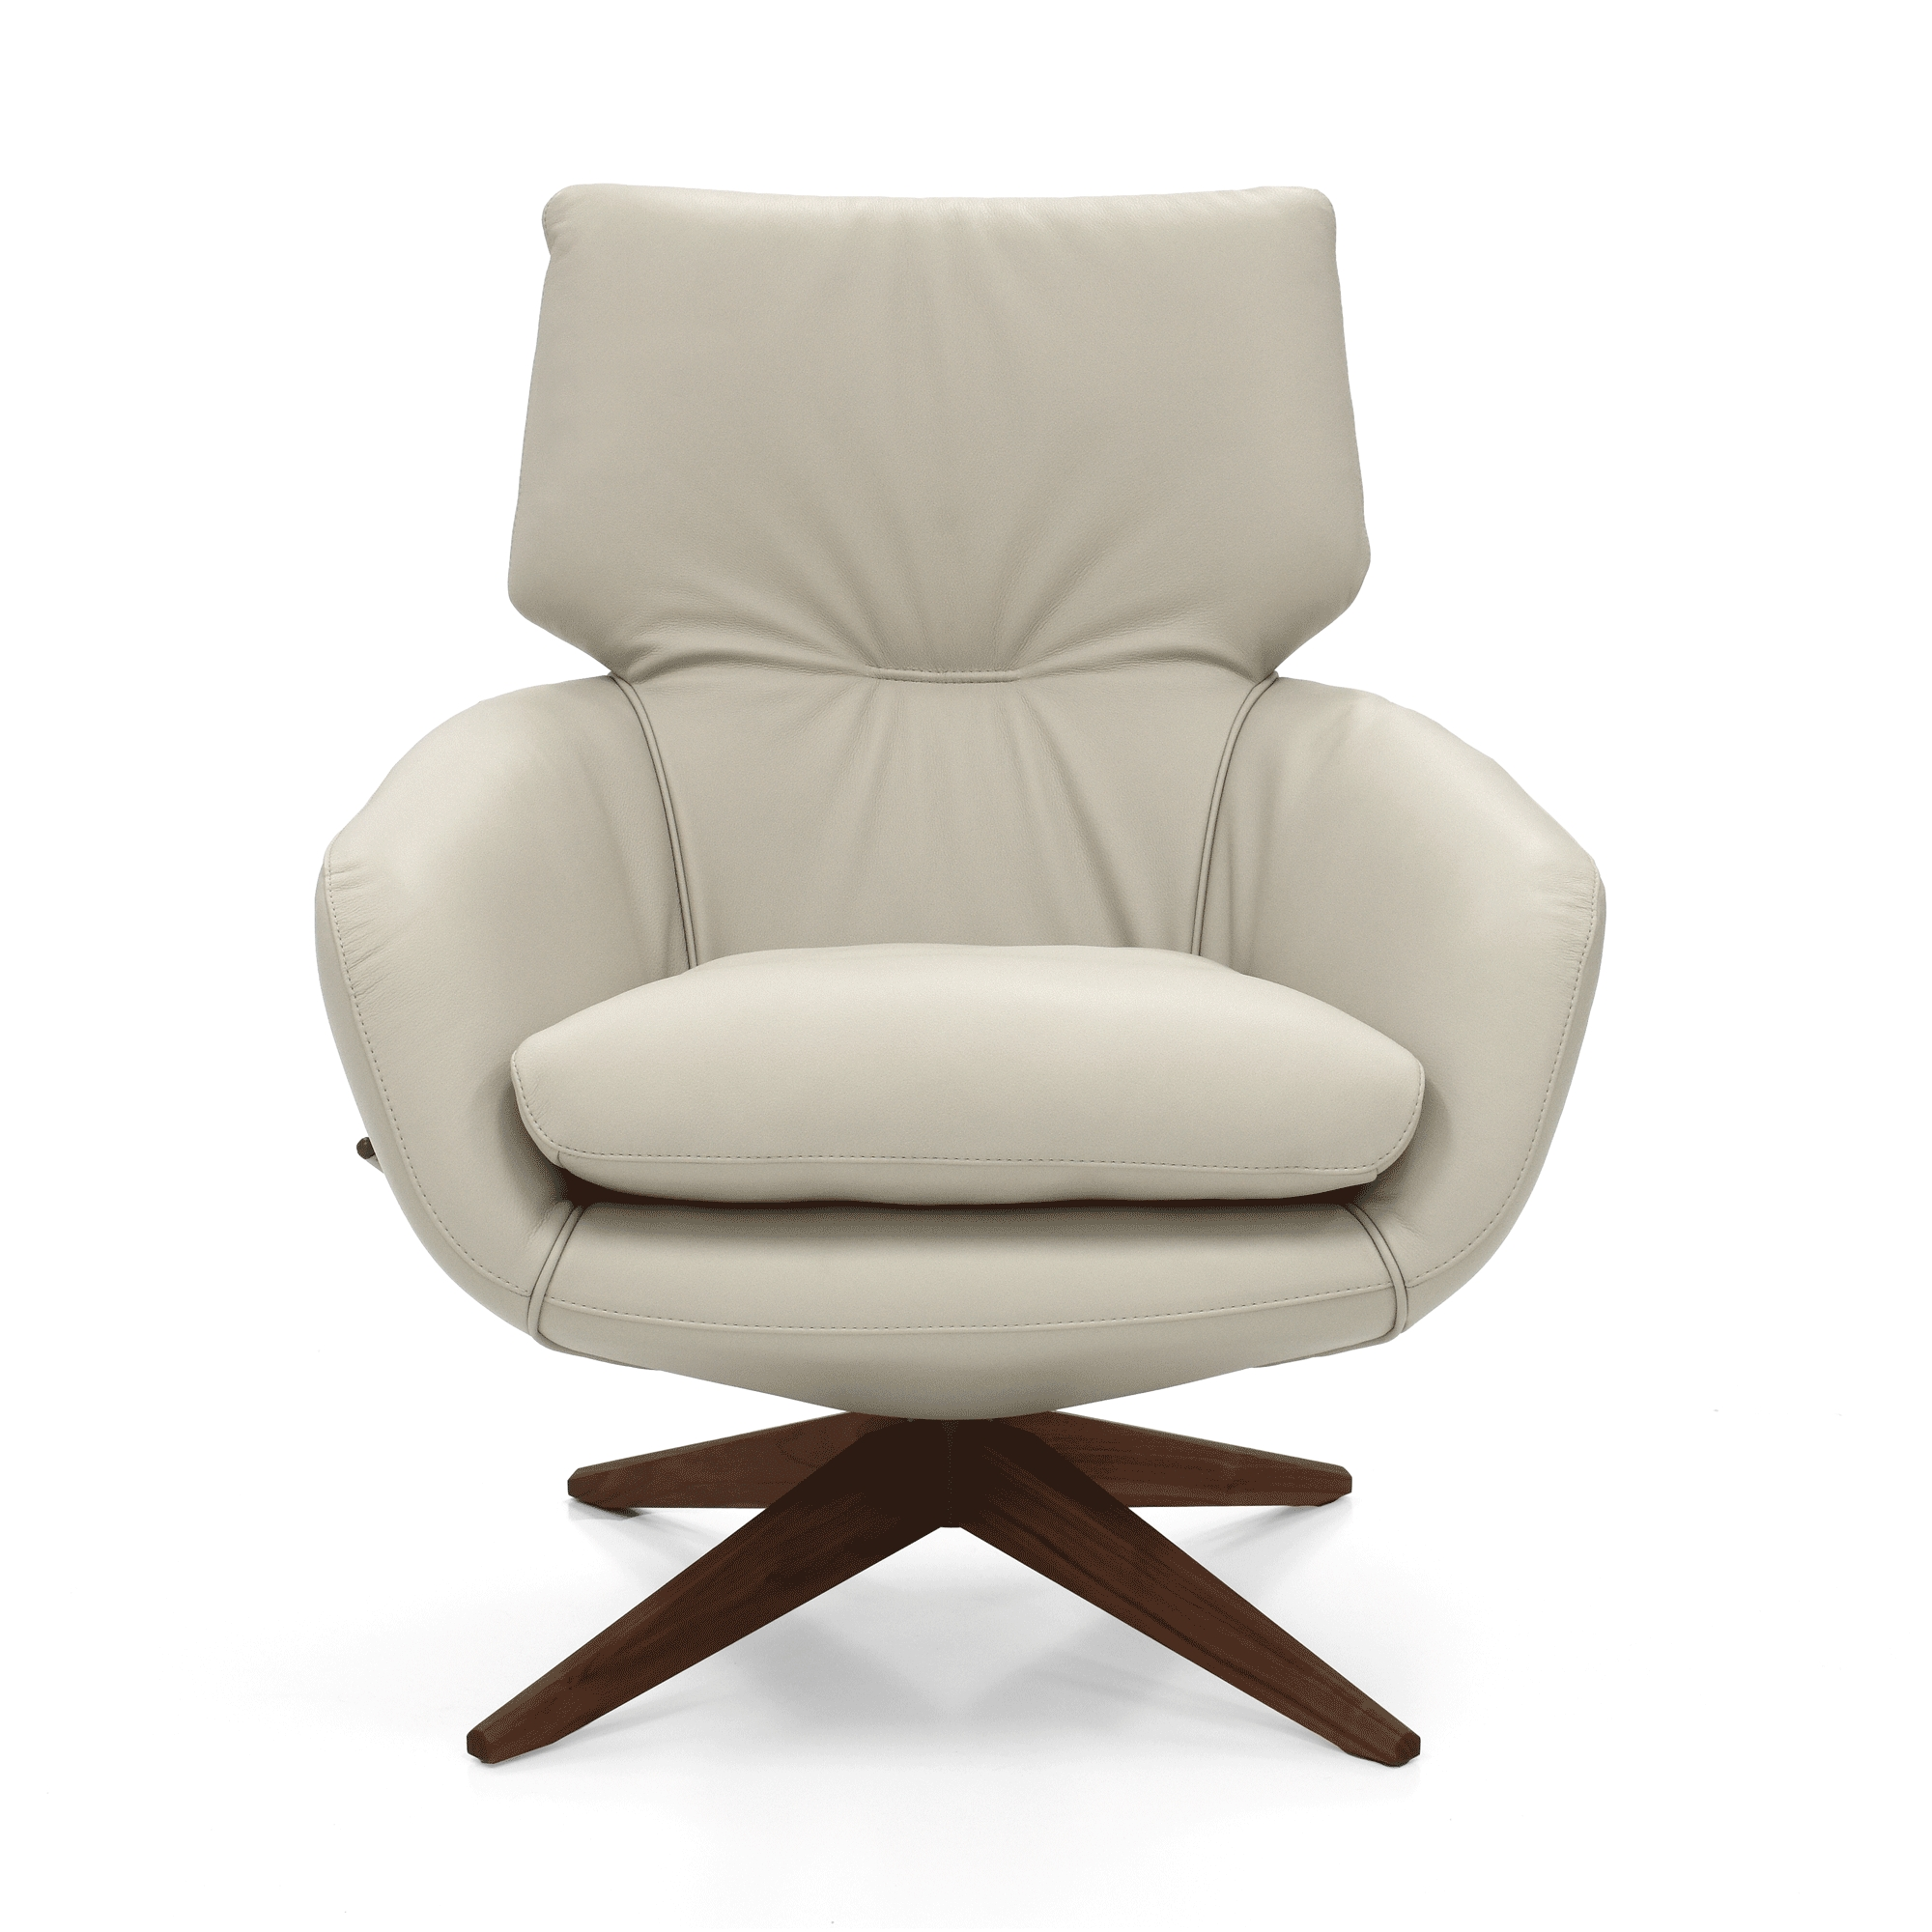 Admirable Lloyd Swivel Chair Pabps2019 Chair Design Images Pabps2019Com